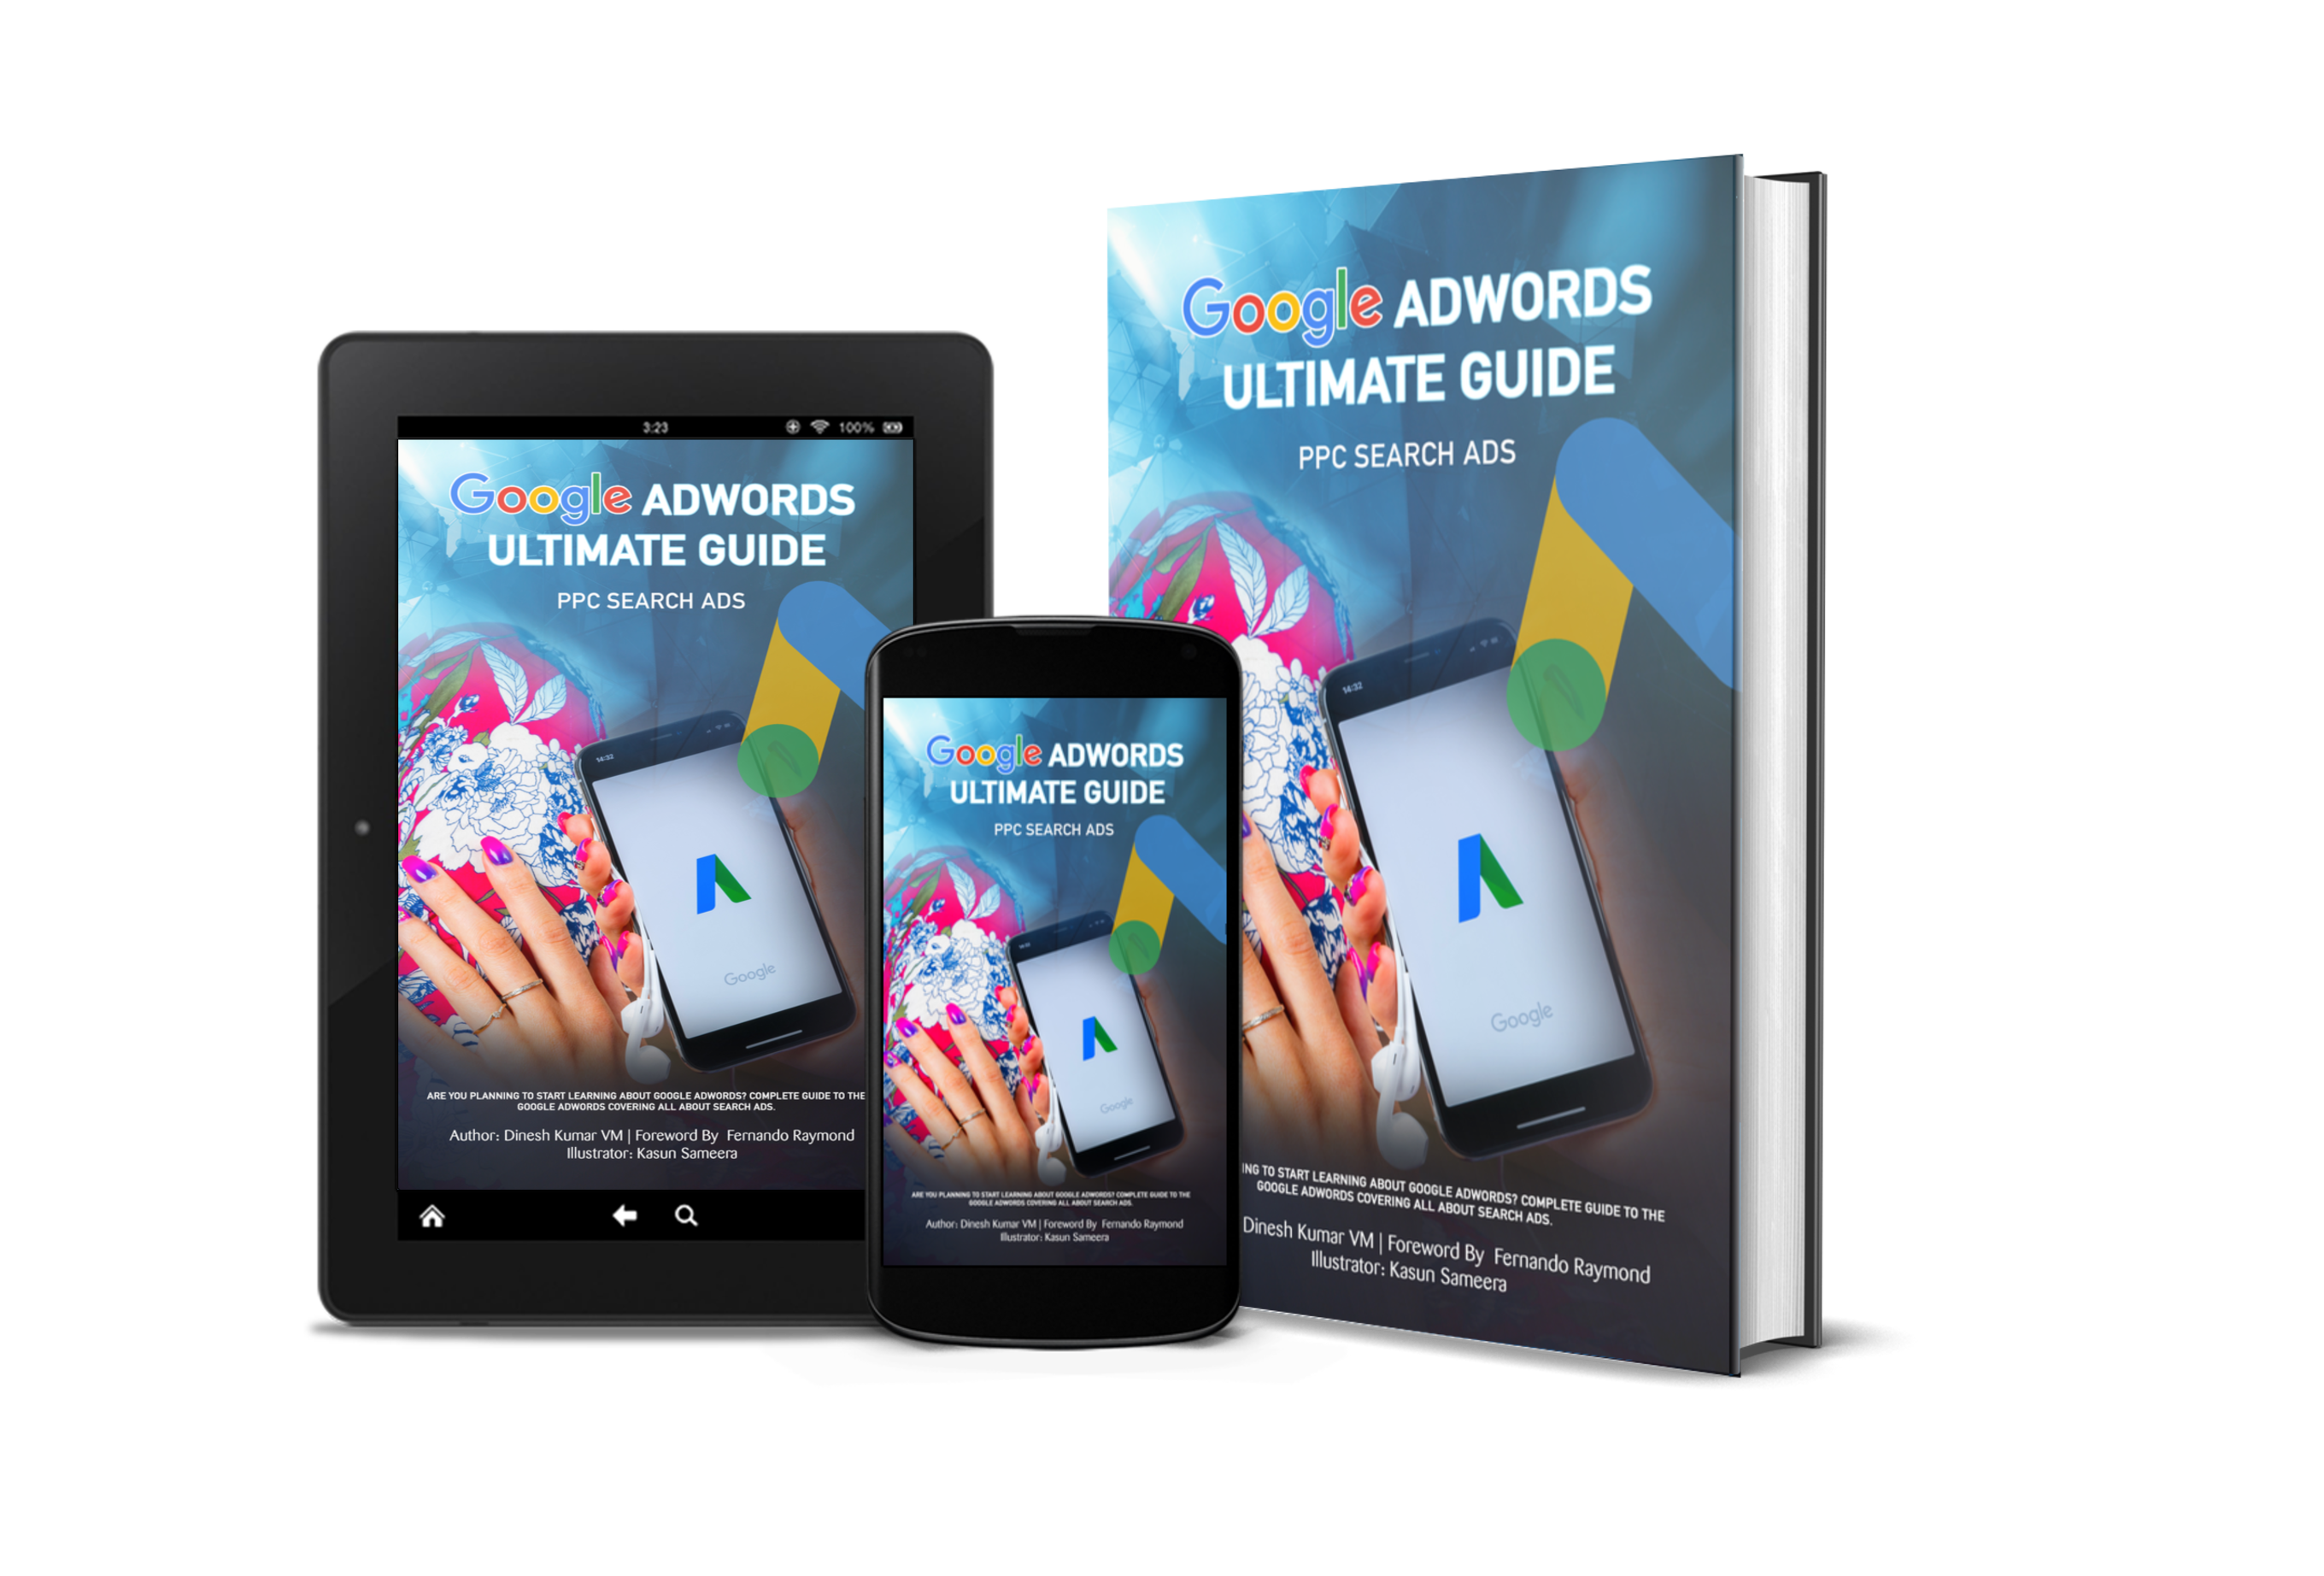 google adwords ultimate guide